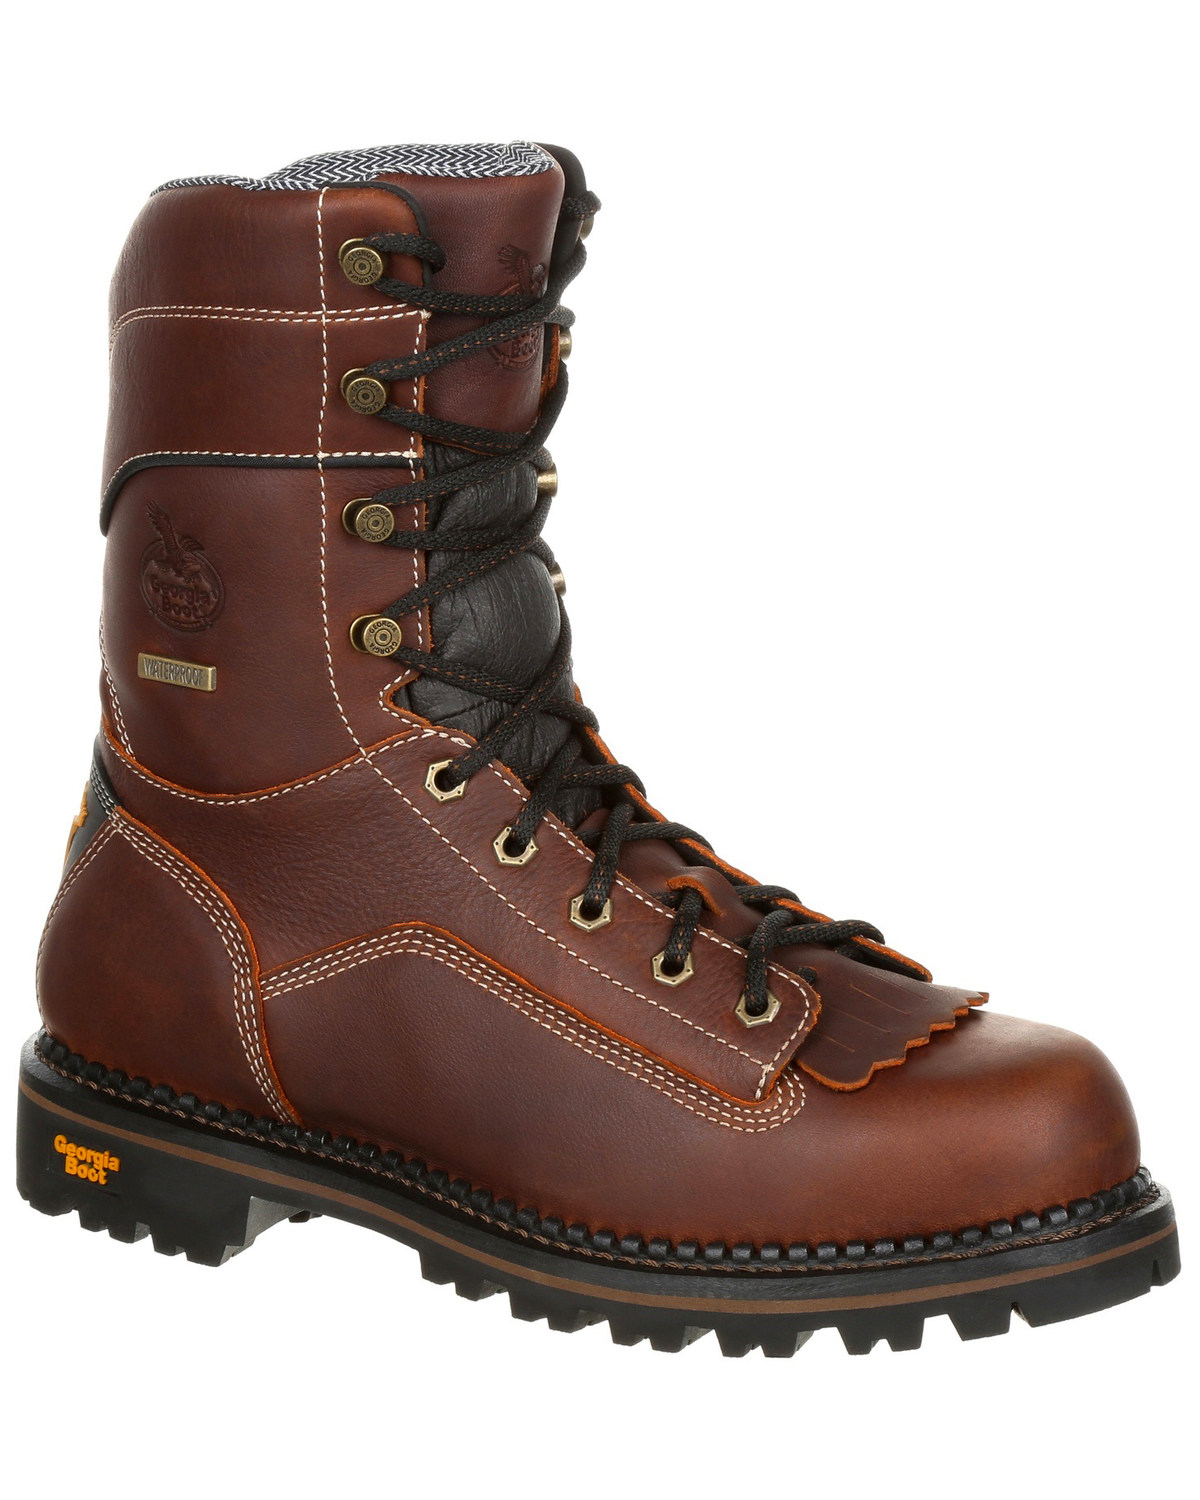 42d97040794 Georgia Boot Men's Amp LT Waterproof Low Heel Work Boots - Composite Toe